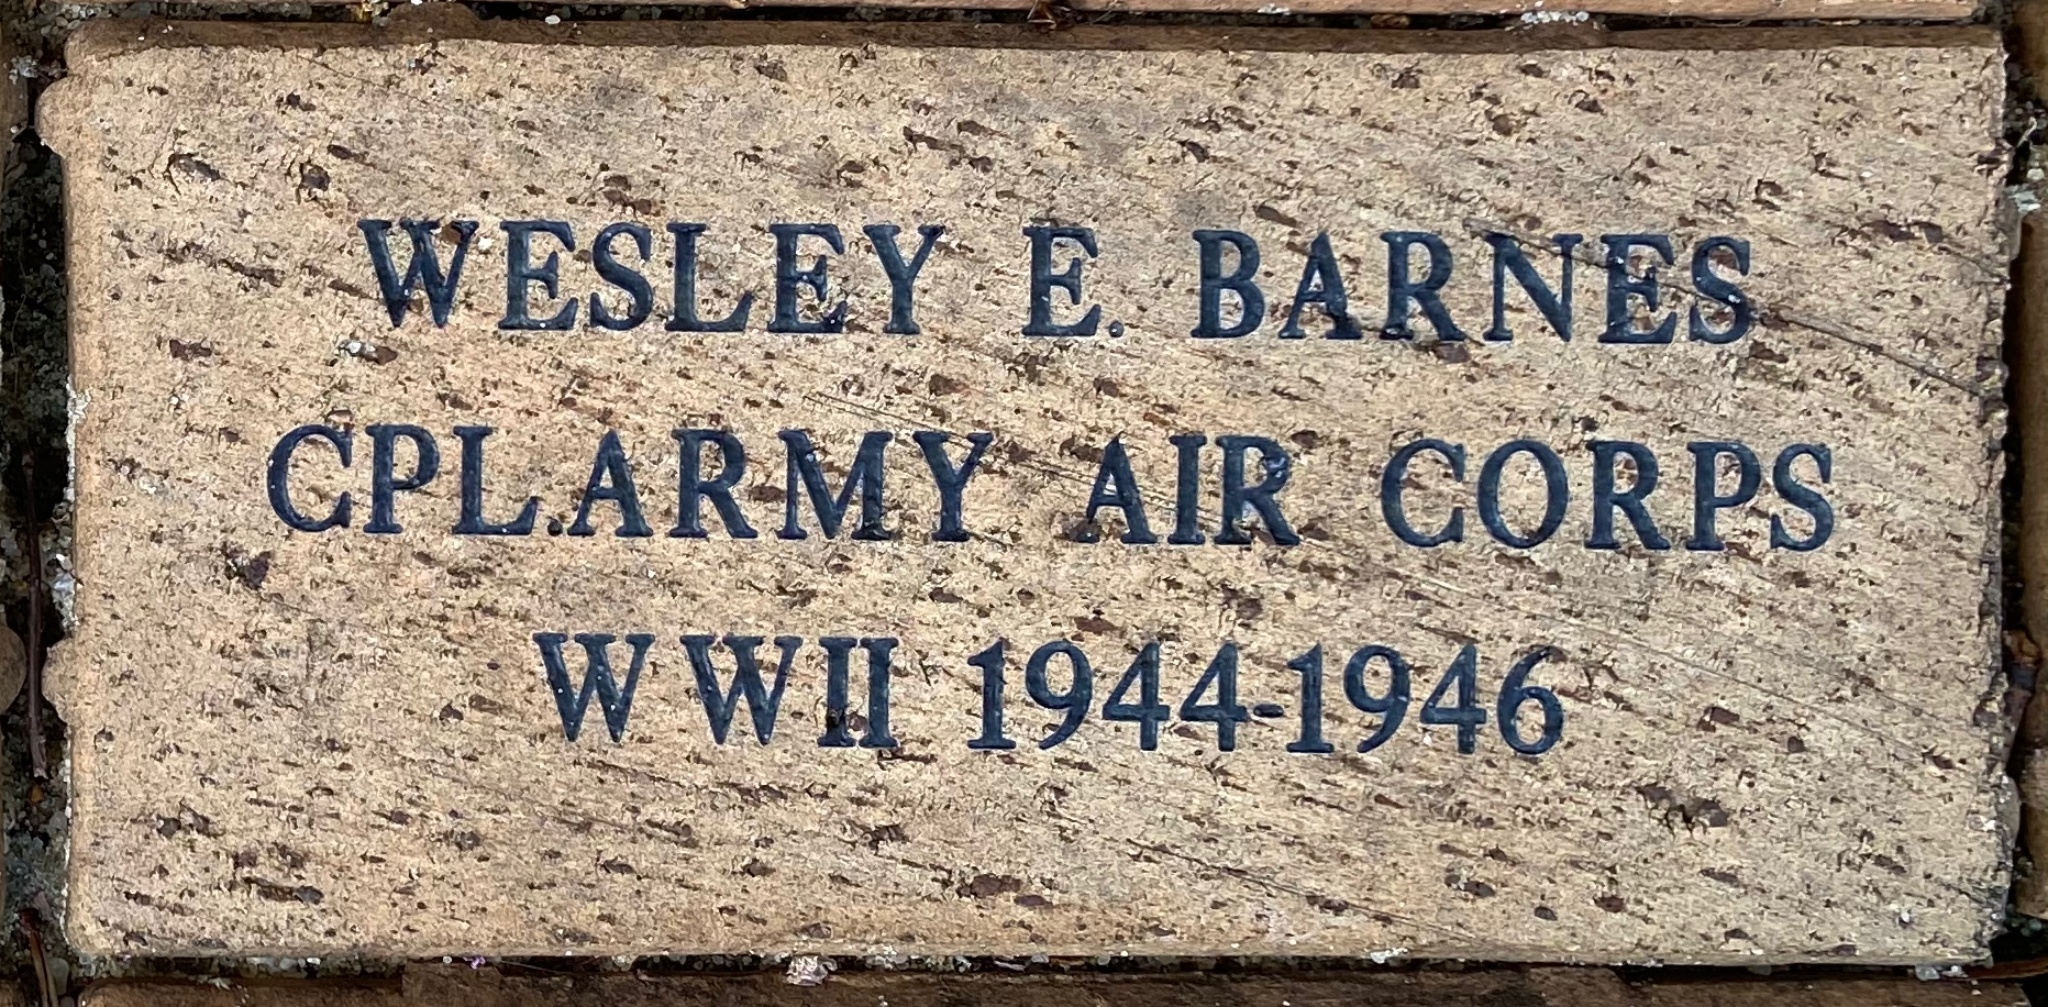 WESLEY E. BARNES CPL. ARMY AIR CORPS WWII 1944 -1946